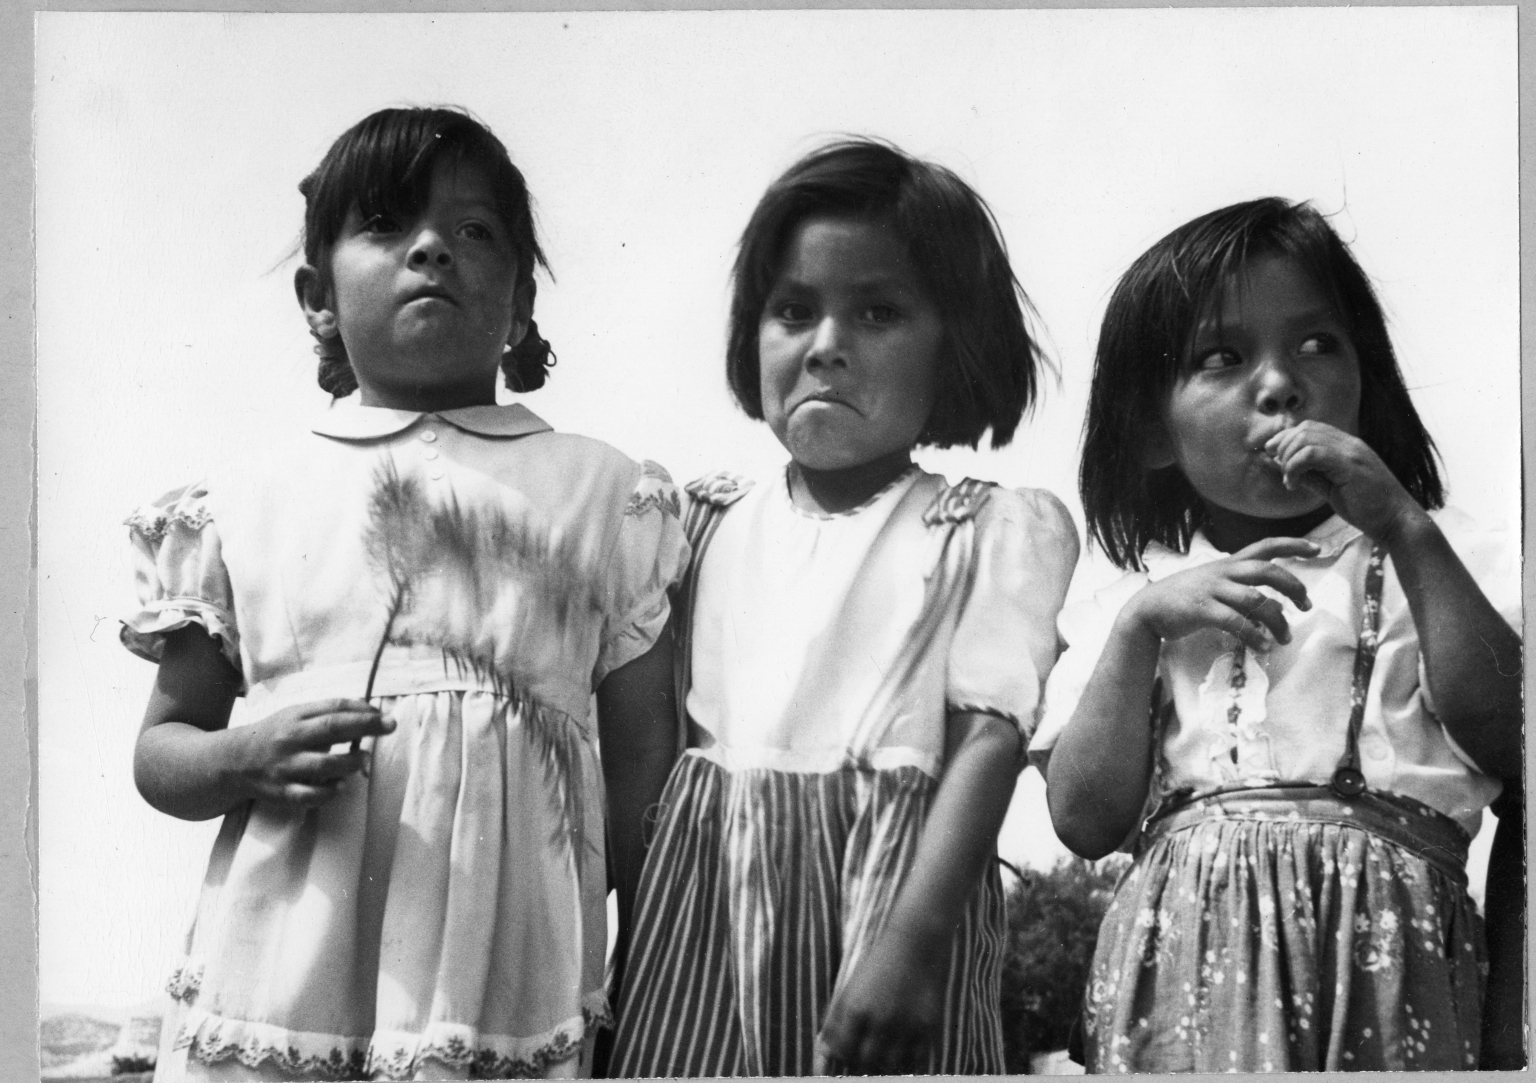 San Ildefonso Pueblo, observations at Corn Dance. Portrait of 3 young girls